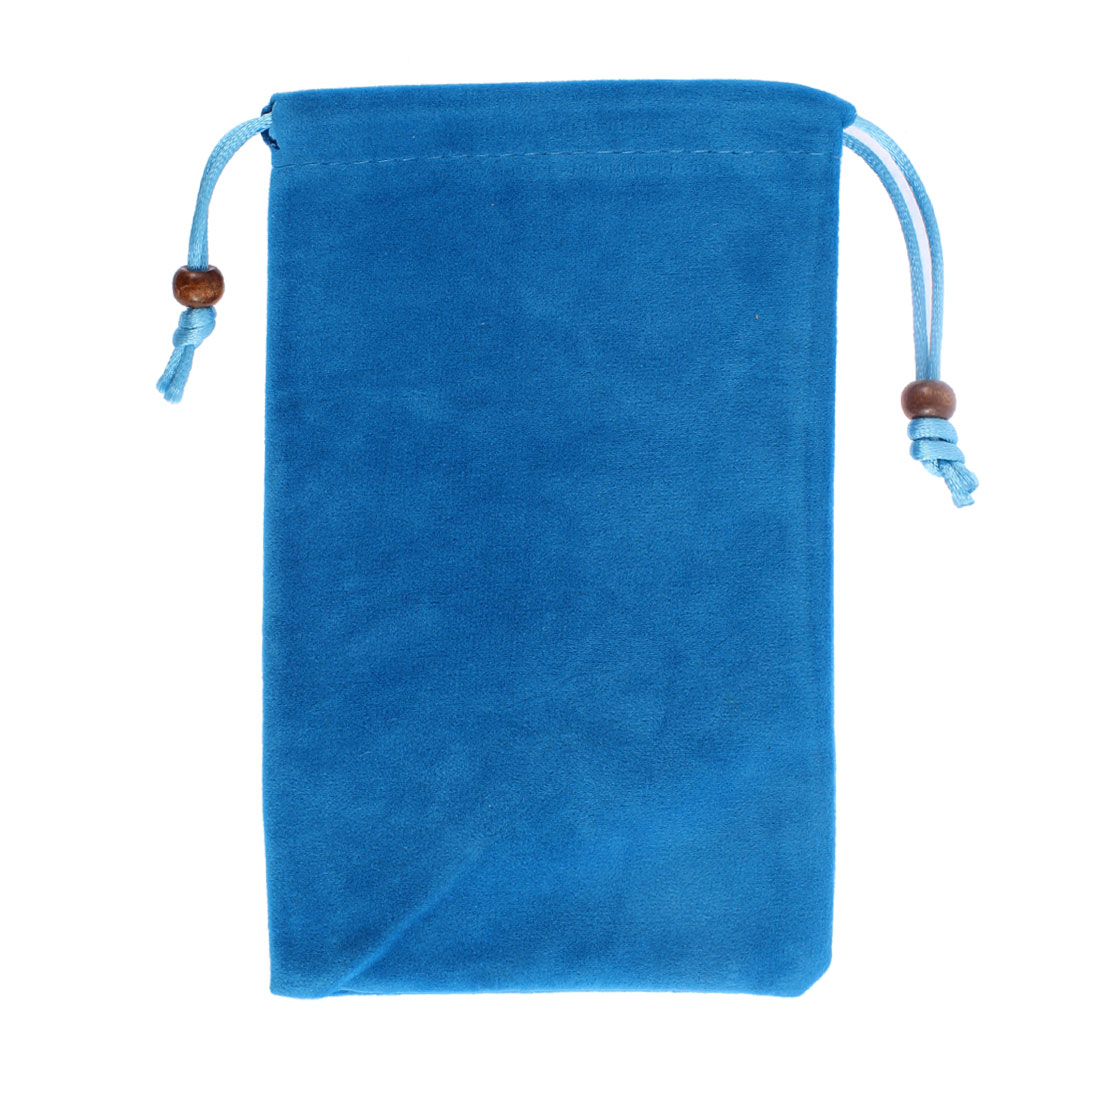 Mobilephone Cell Phone MP4 Pouch Sleeve Bag Holder Blue 6 Inch Length